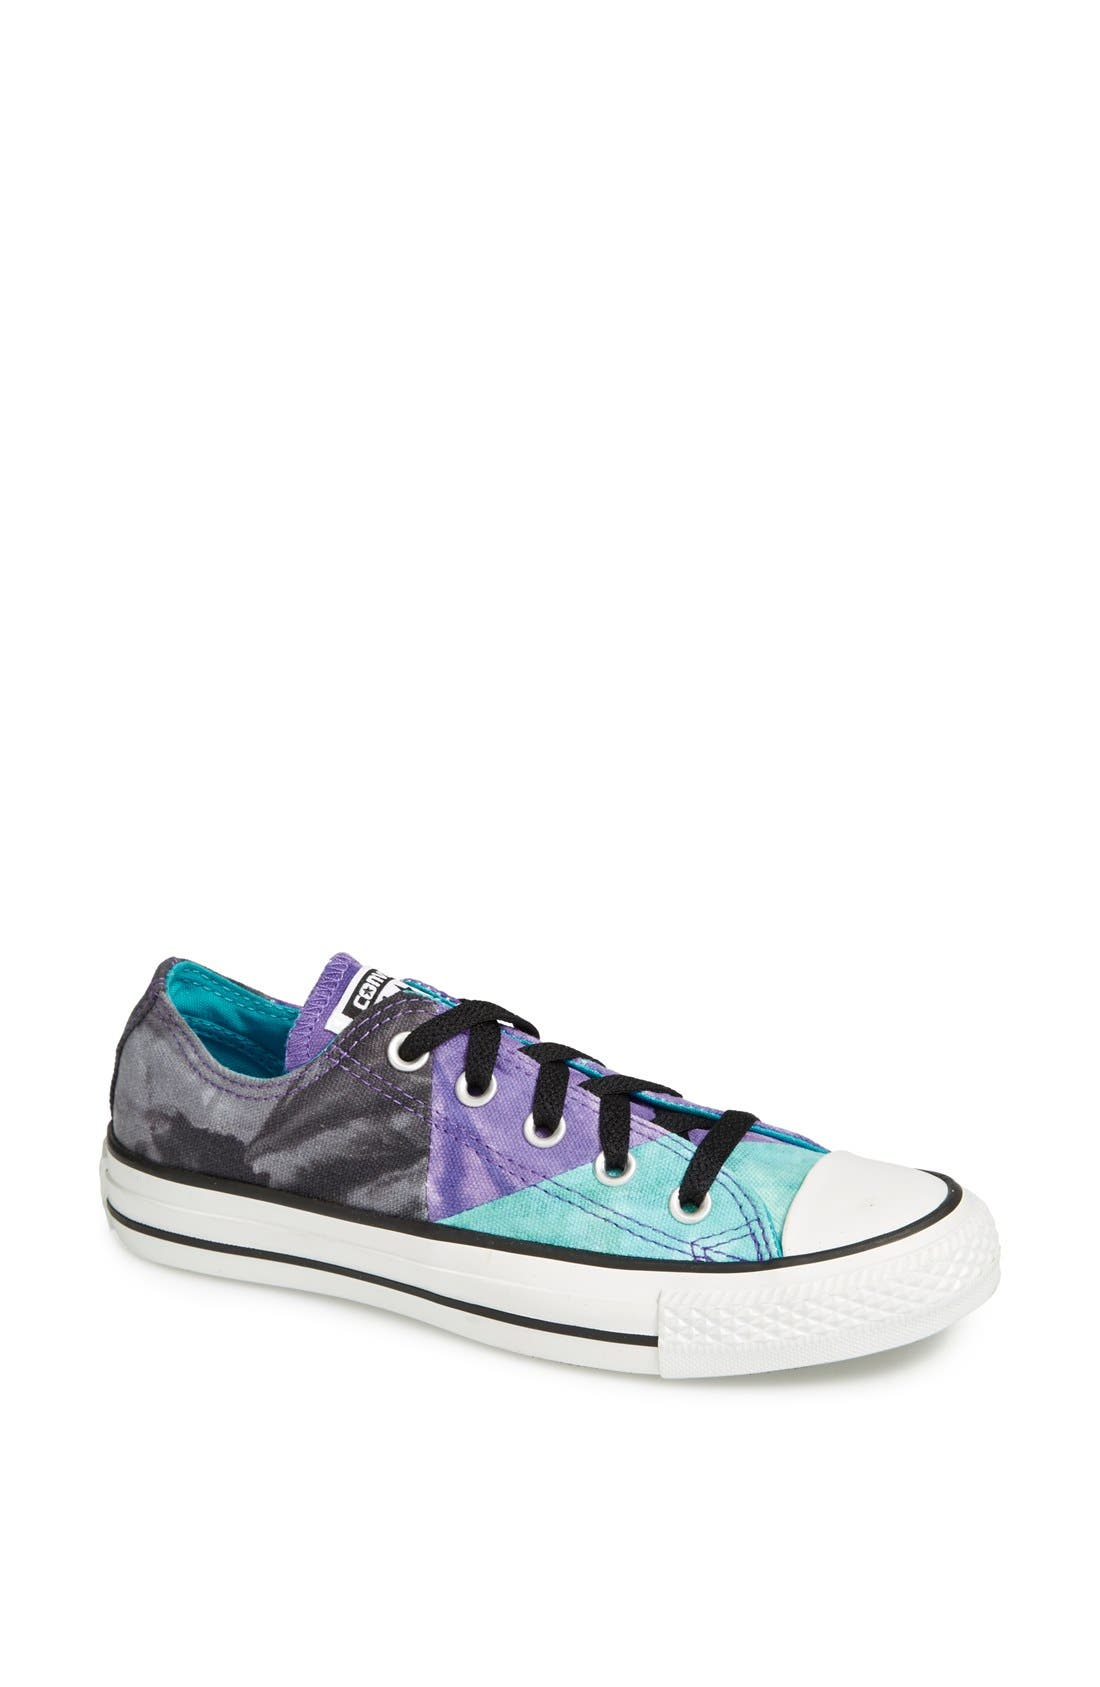 Main Image - Converse Chuck Taylor® All Star® 'Multi Panel' Low Top Sneaker (Women)